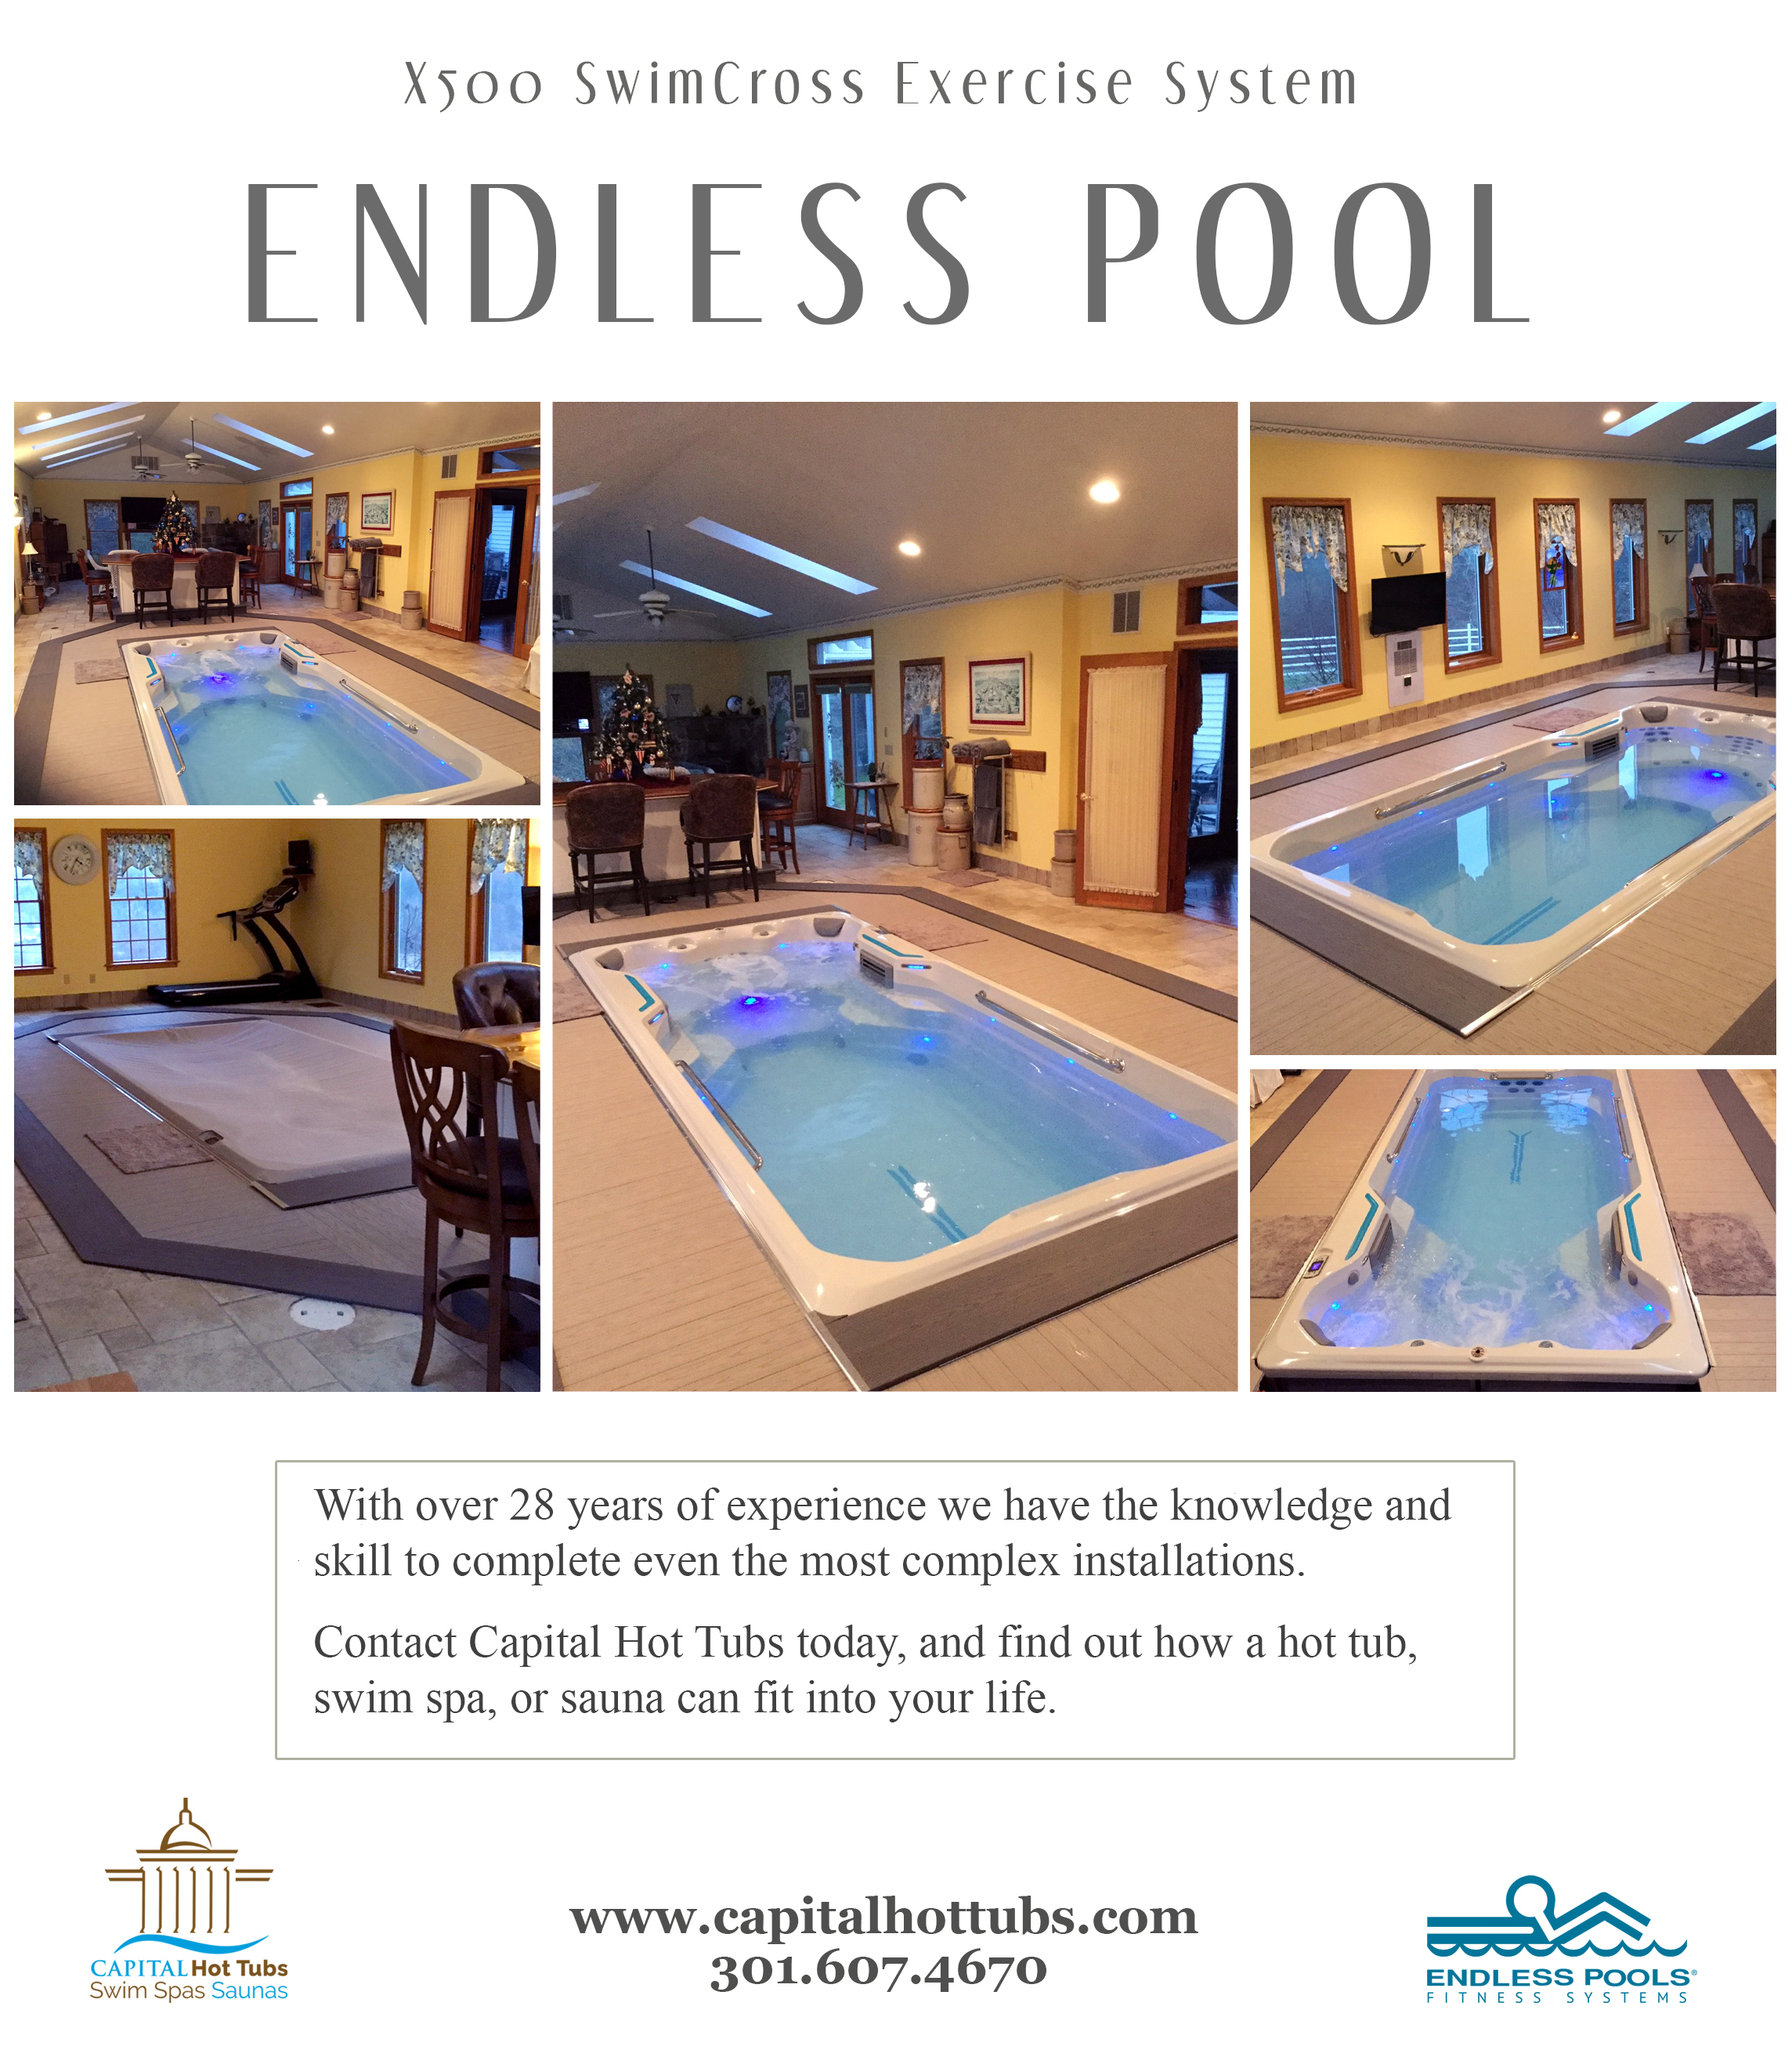 endless pool, swim spa